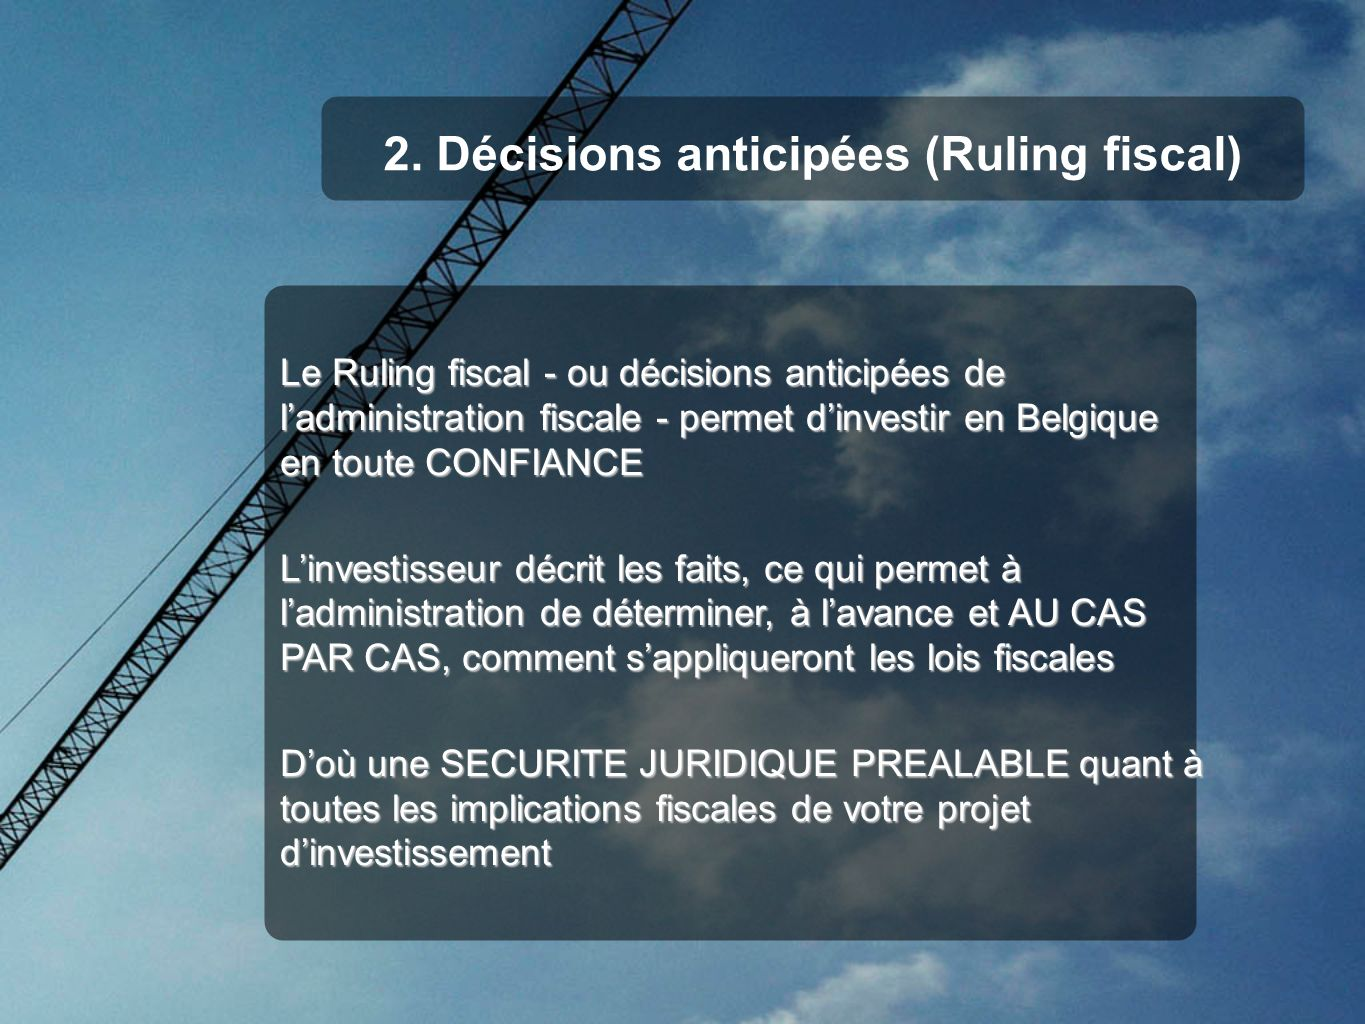 2. Décisions anticipées (Ruling fiscal)